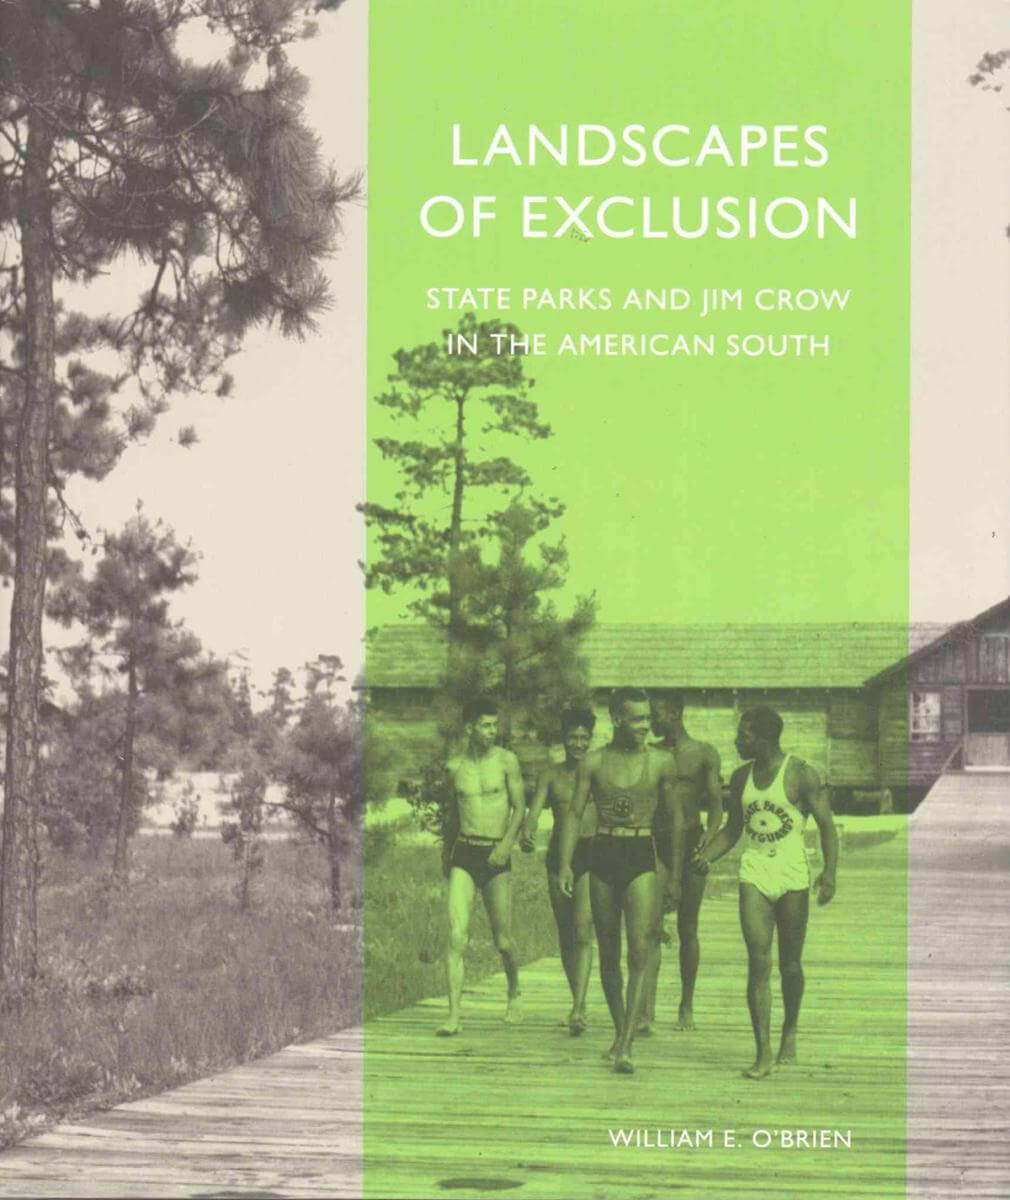 Cover, Landscapes of Exclusion: State Parks and Jim Crow in the American South.